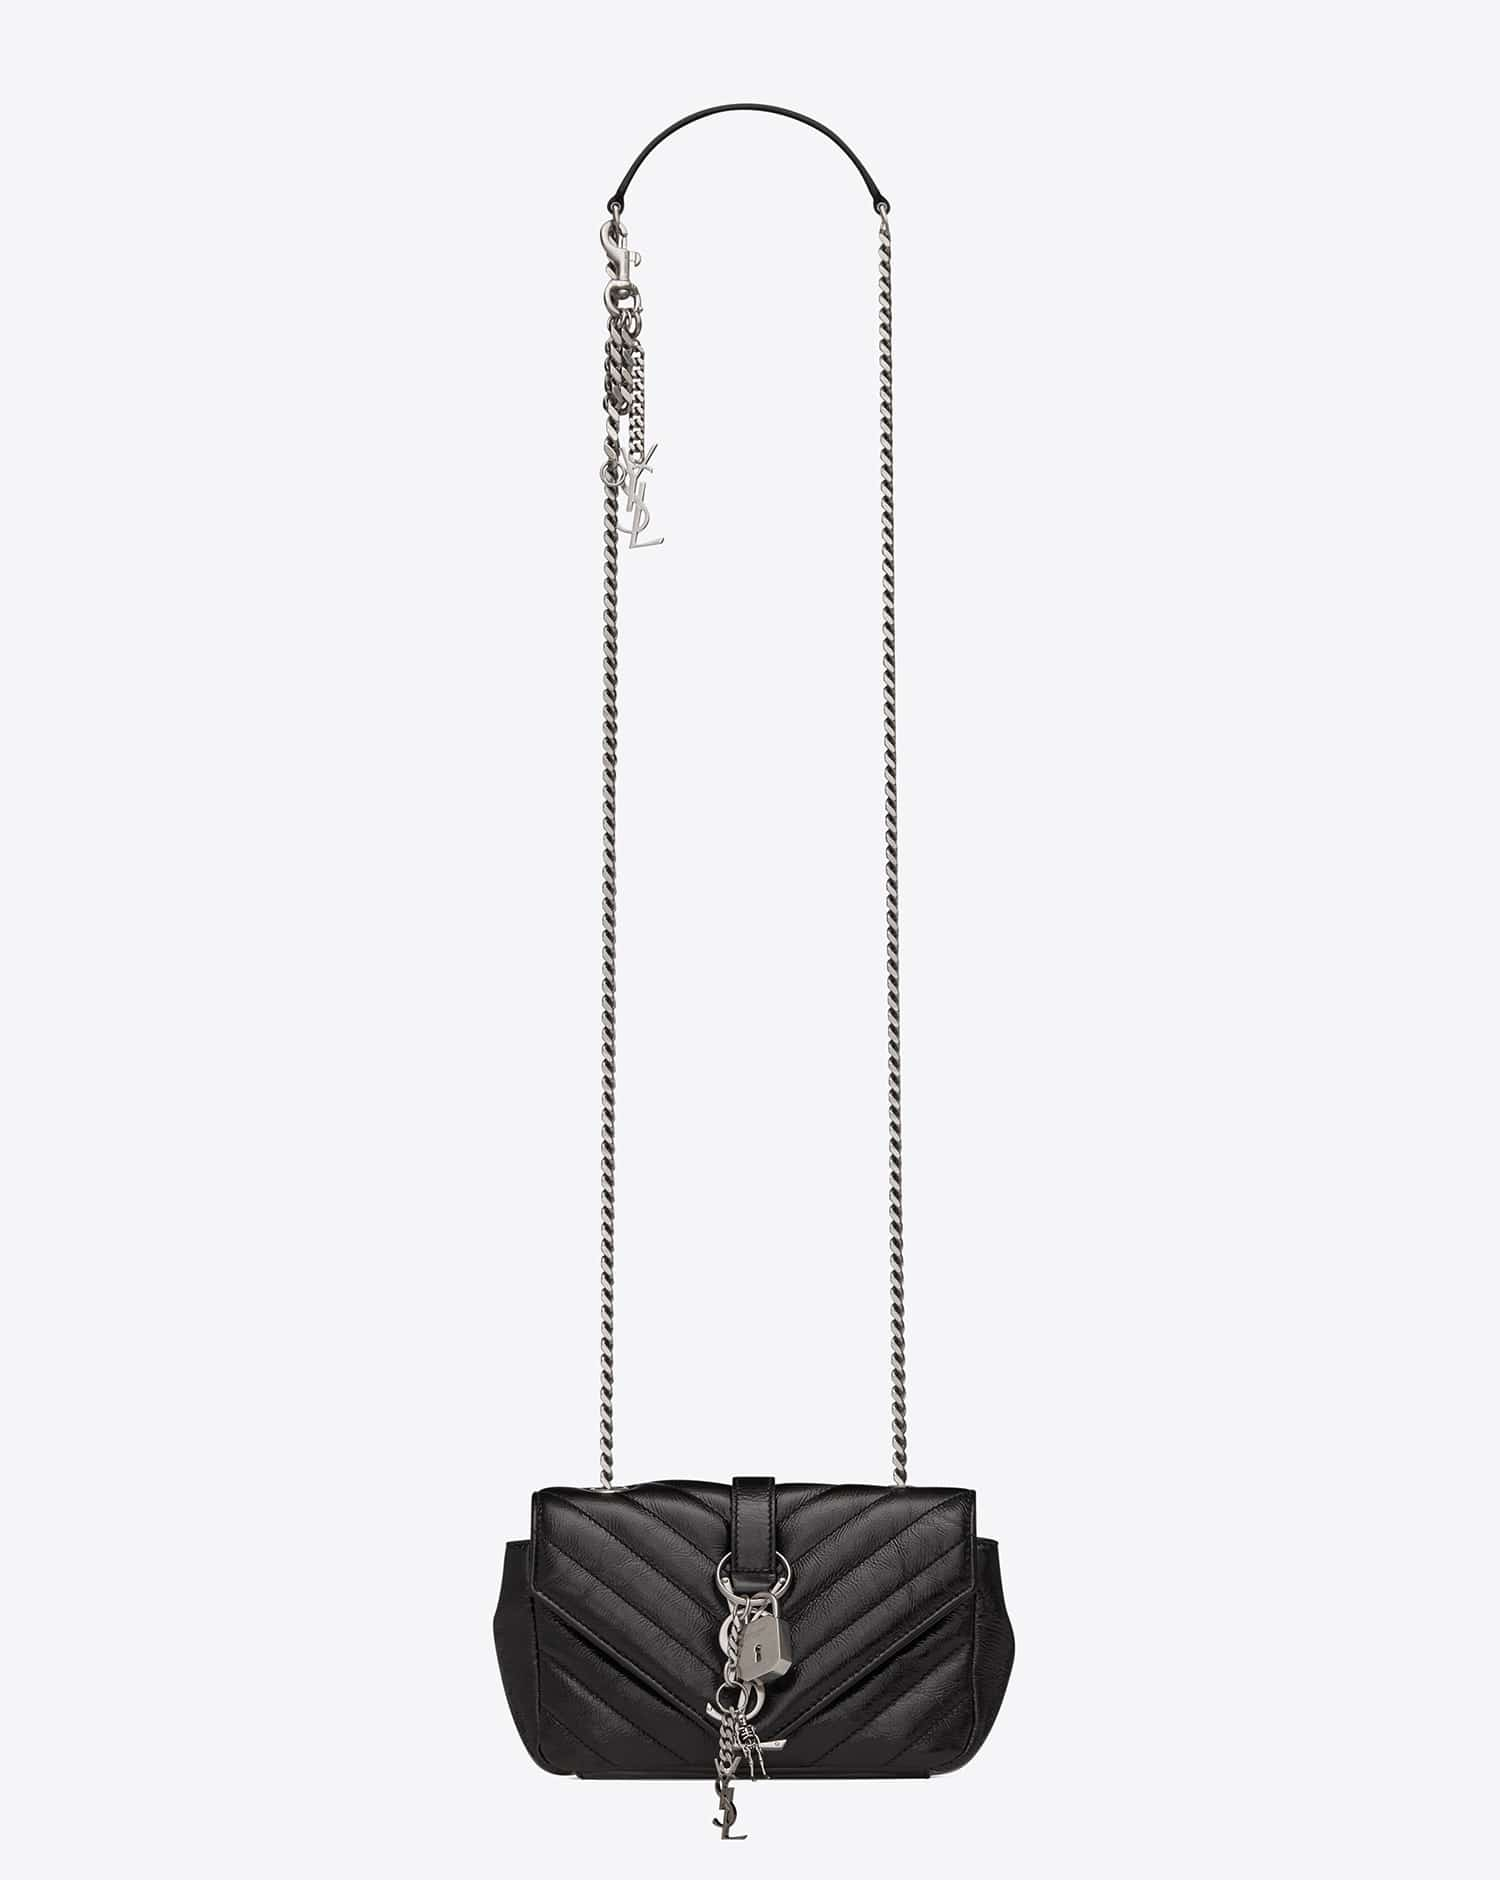 e19317f604 Saint Laurent Fall Winter 2015 Bag Collection Featuring Punk Chain ...